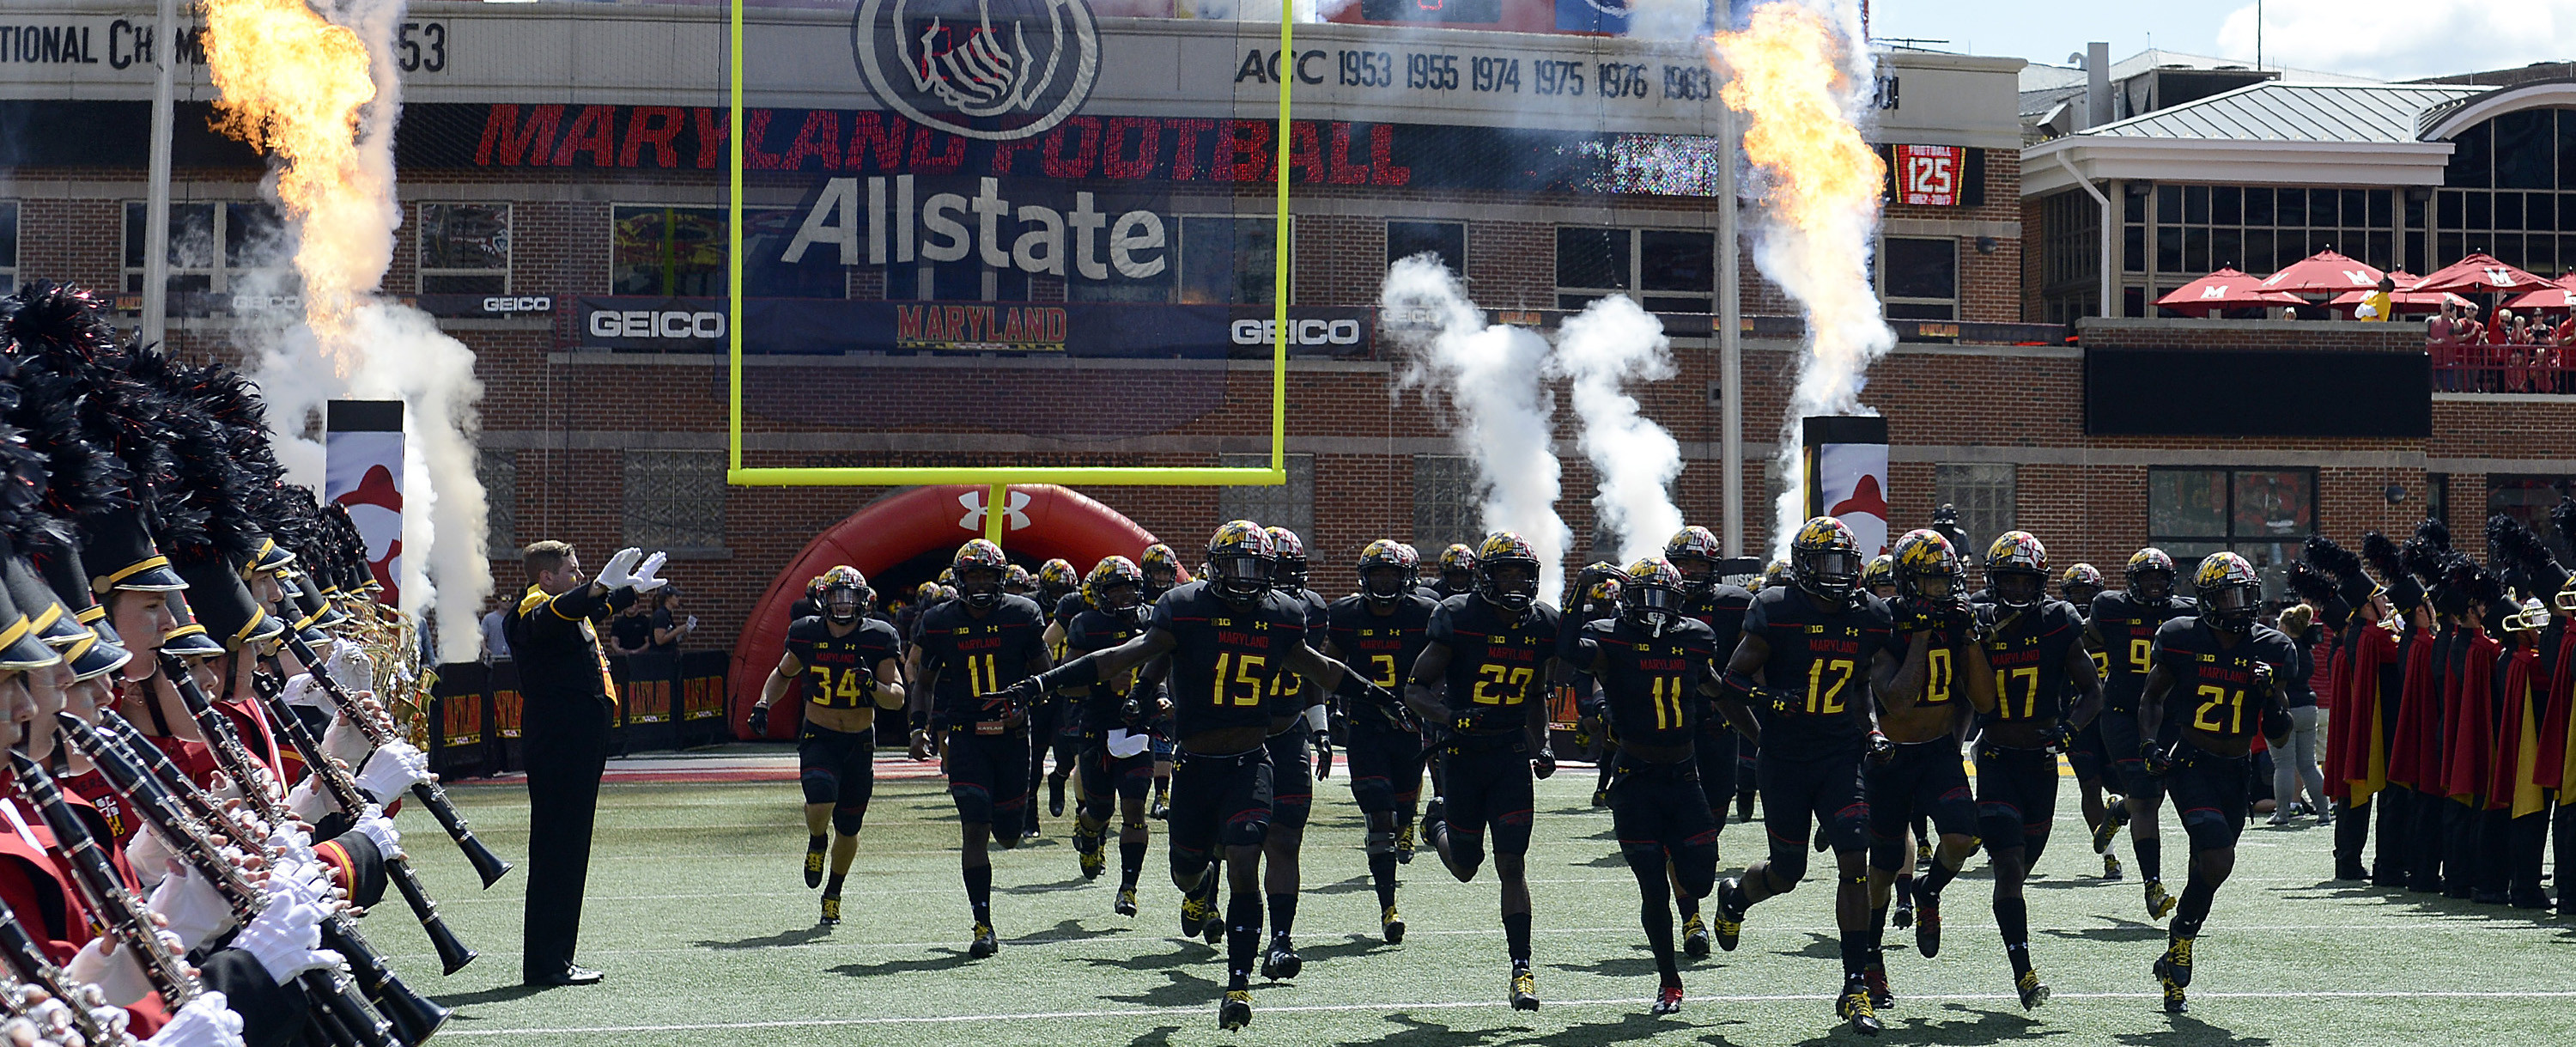 football announces future schedule update - university of maryland